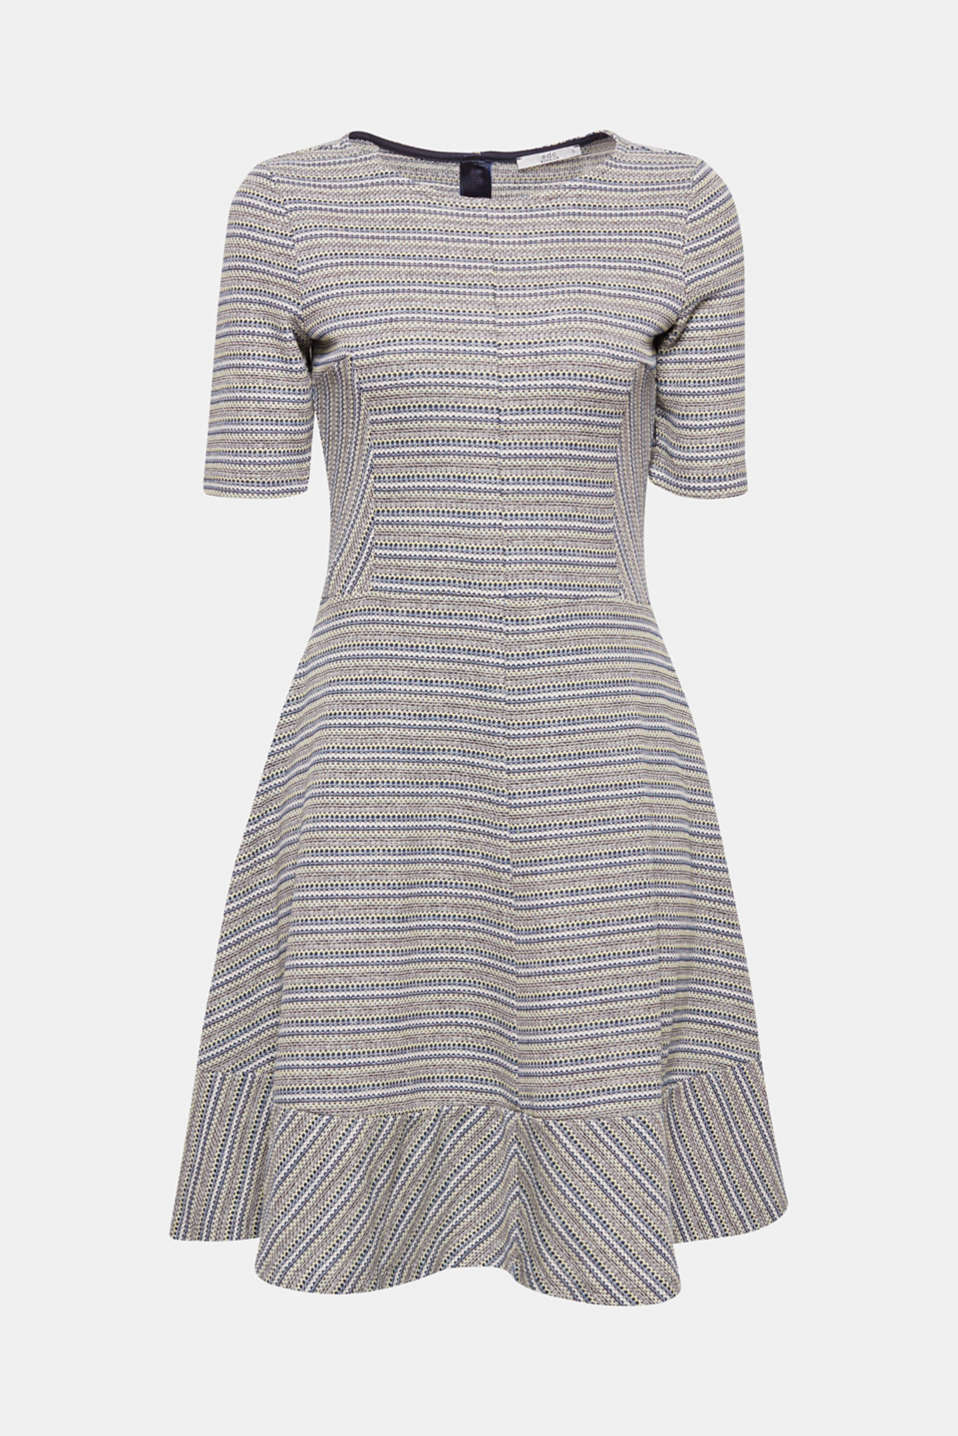 This swirling, flared dress looks fresh and simple with its textured, patterned stripes.